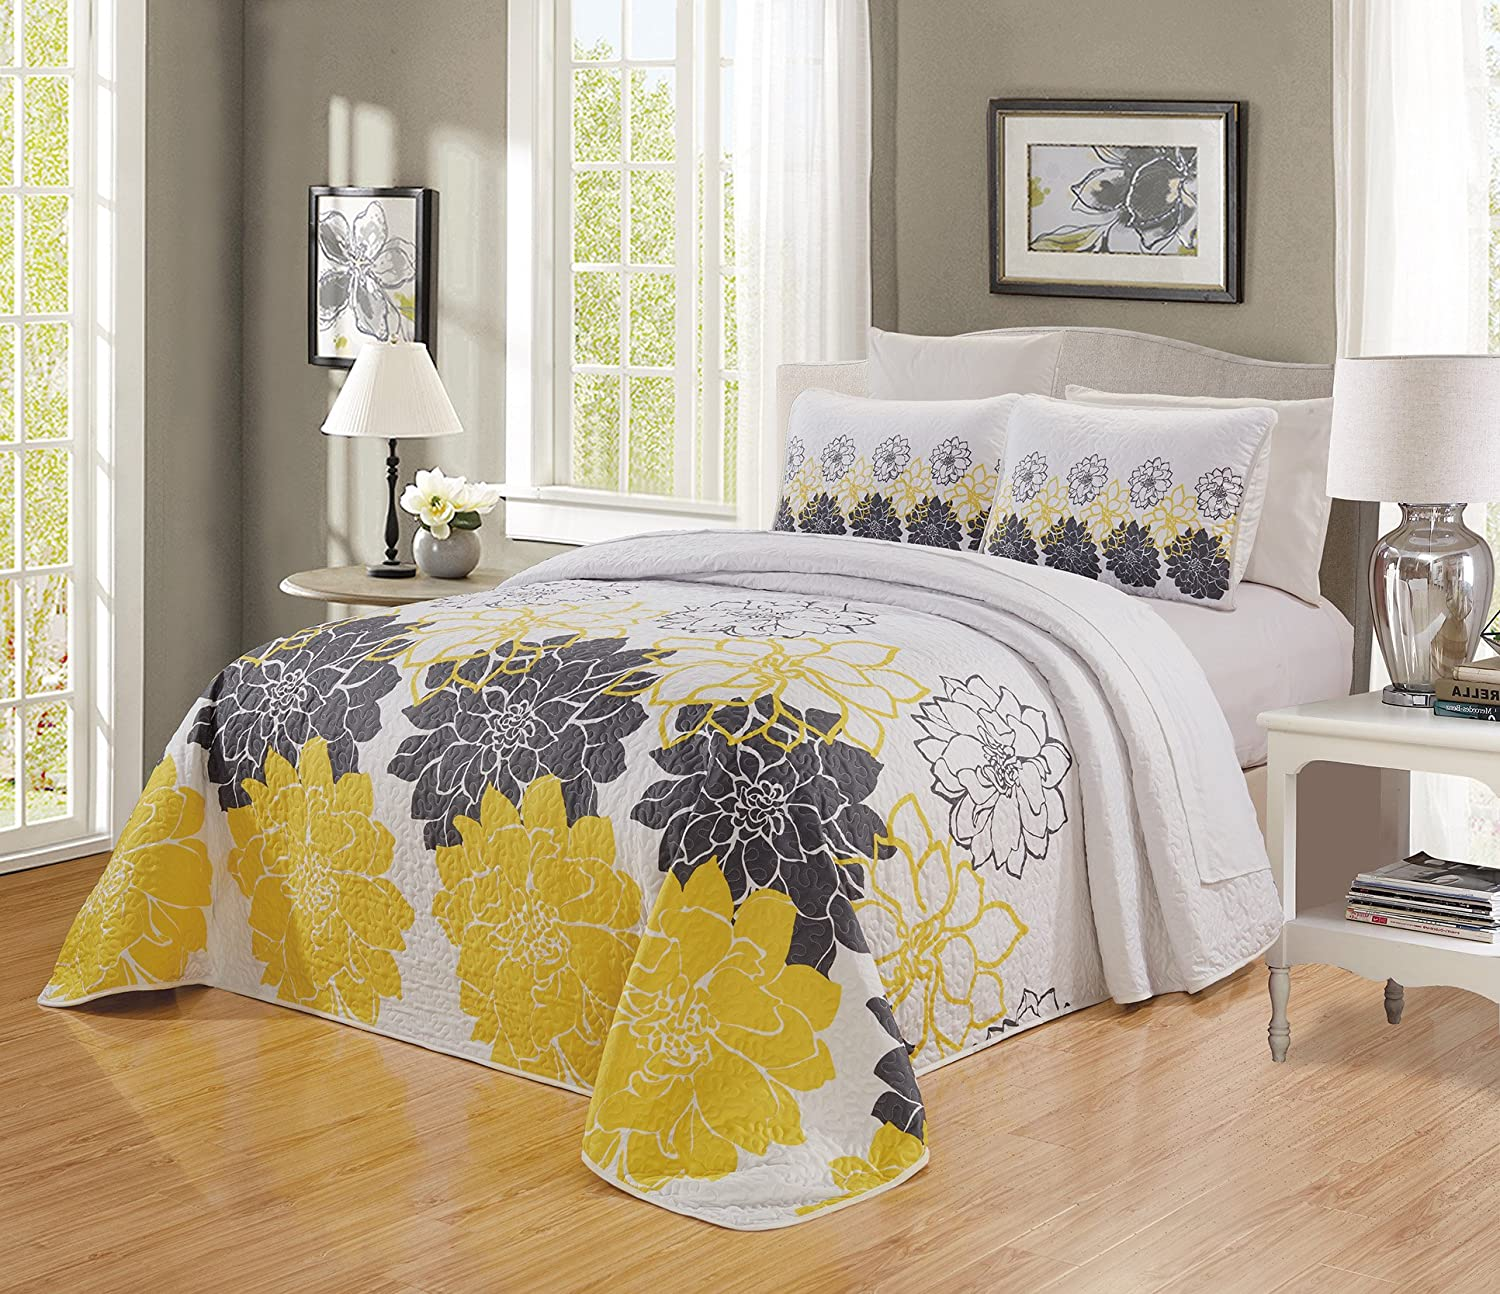 66 X 95 Aqua Blue, Grey, Medallion 2-Piece Fine Printed Oversize Quilt Set Reversible Bedspread Coverlet Twin//Twin XL Size Bed Cover